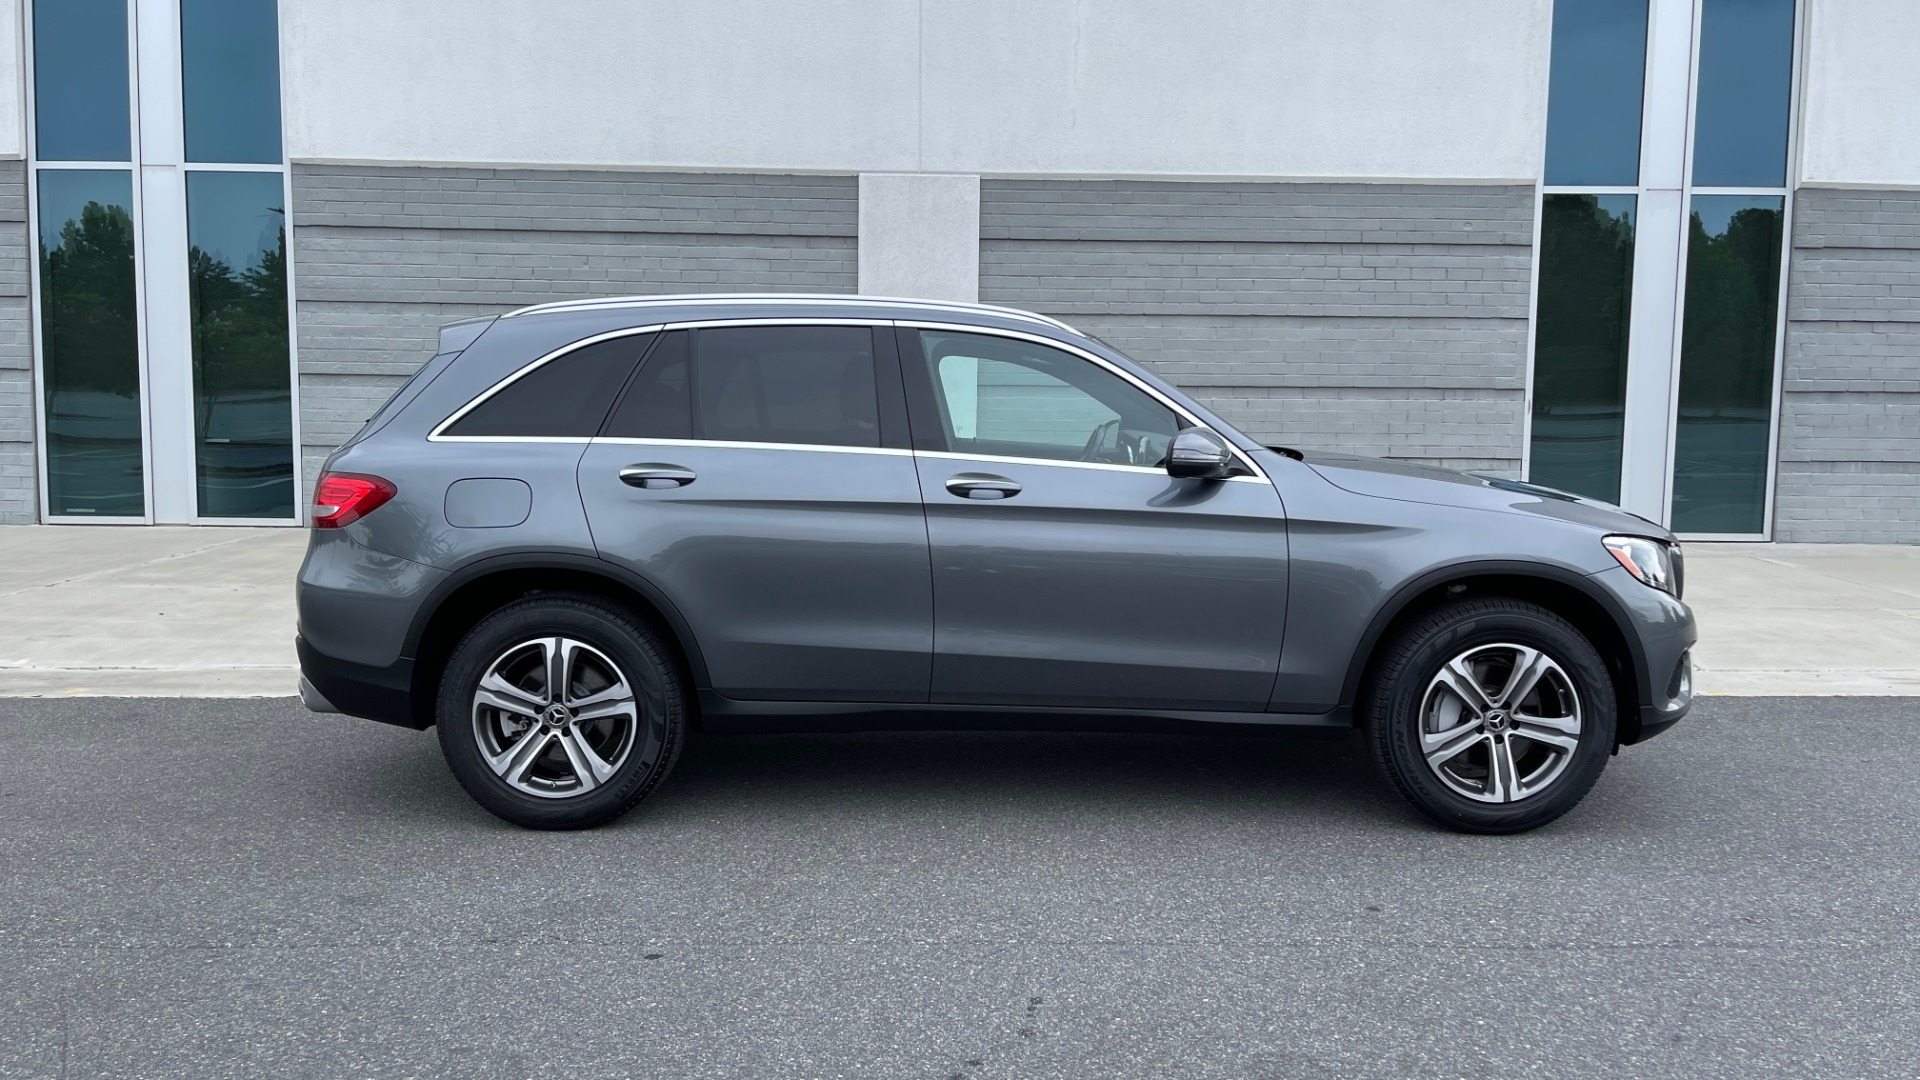 Used 2018 Mercedes-Benz GLC 300 4MATIC PREMIUM / PANO-ROOF / HTD STS / APPLE / REARVIEW for sale $34,295 at Formula Imports in Charlotte NC 28227 7